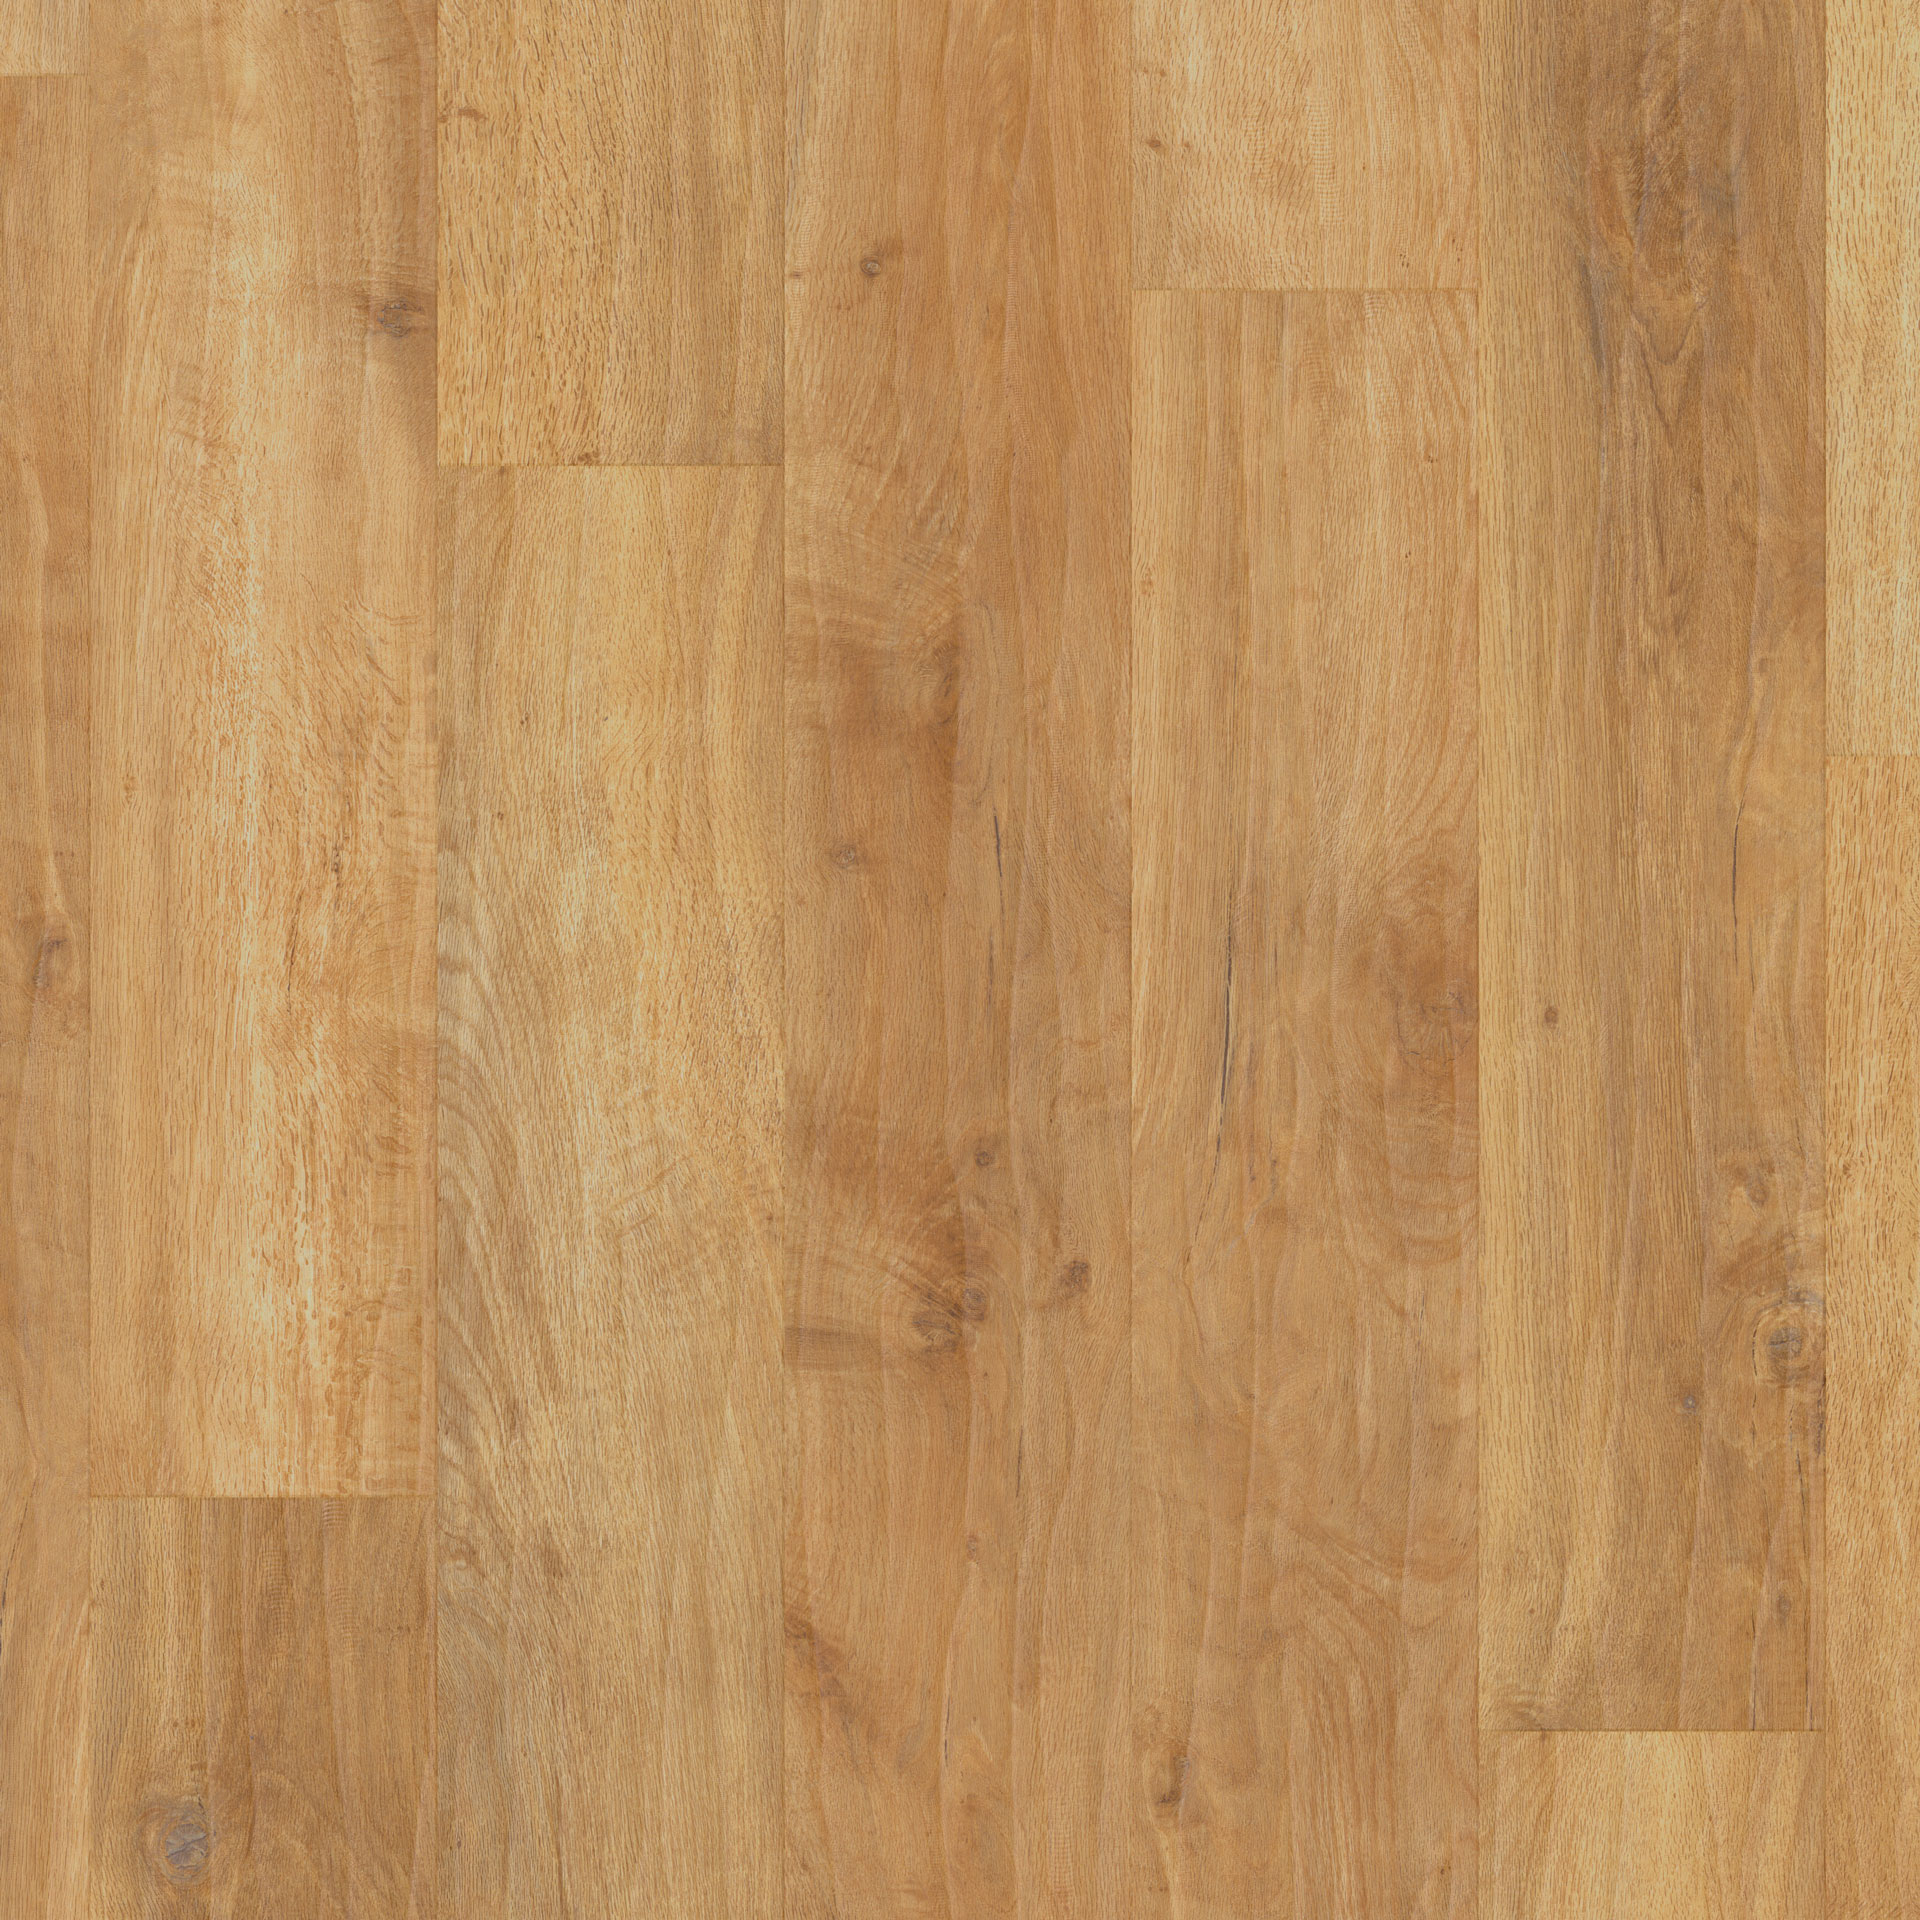 Karndean Art Select Spring Oak Rl01 Vinyl Flooring